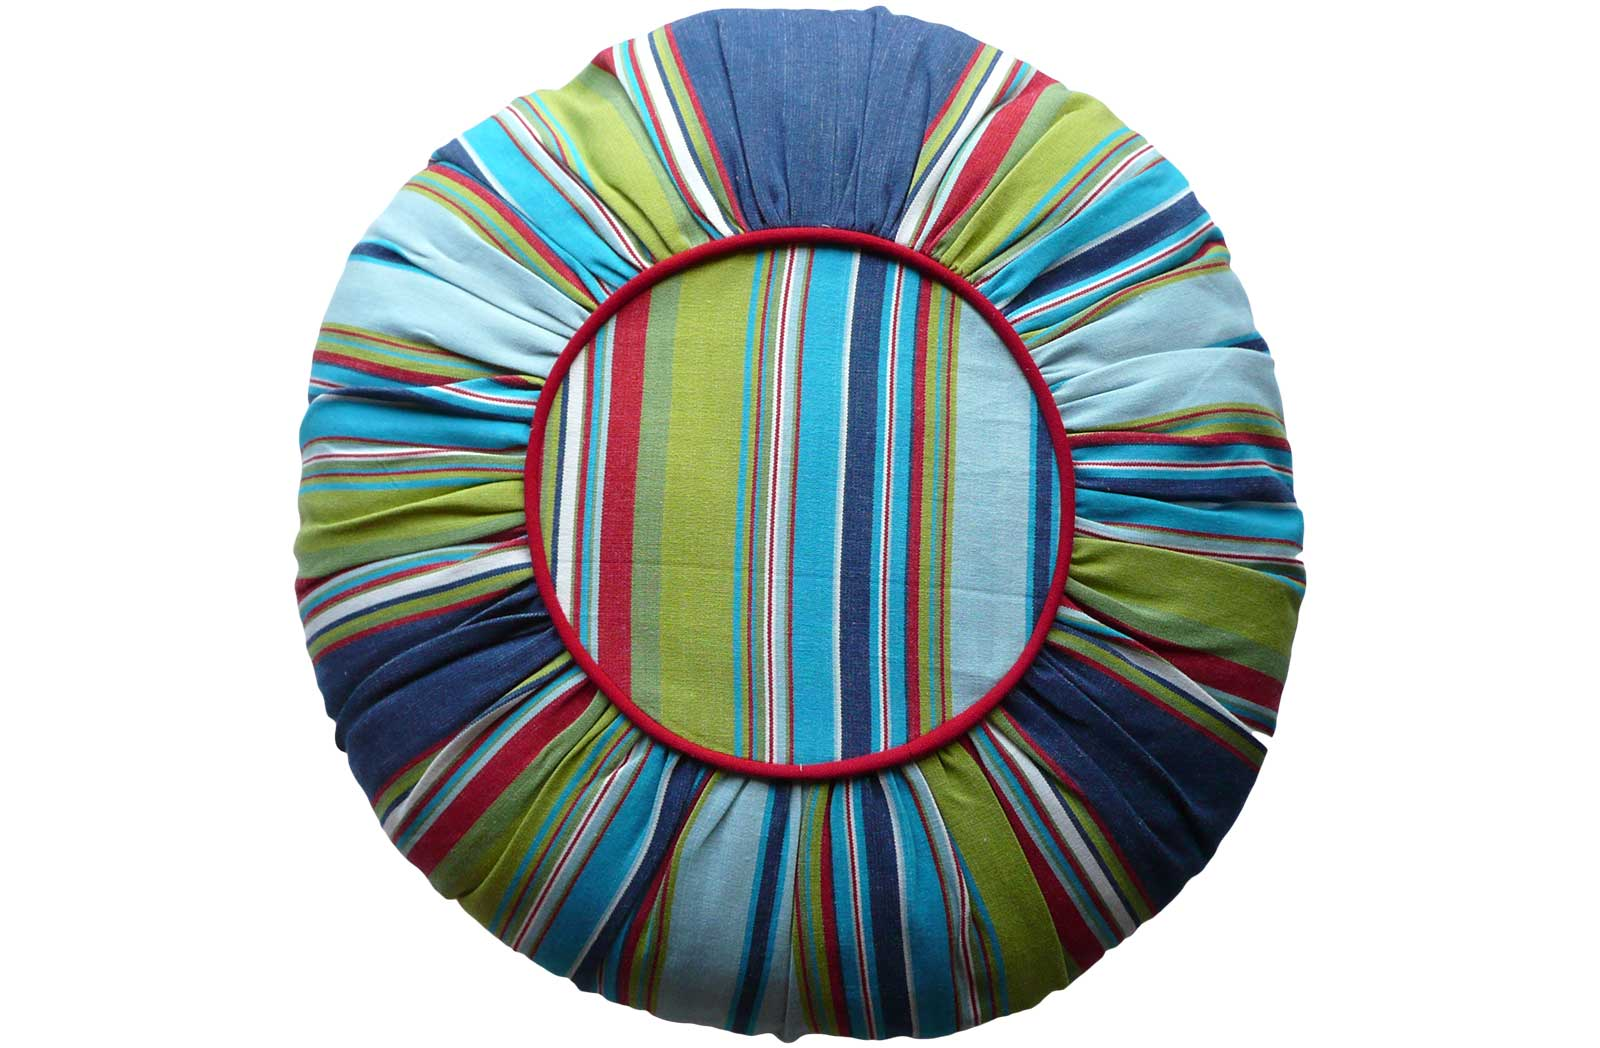 Multi Stripe Round Cushions navy, pale blue, turquoise stripes